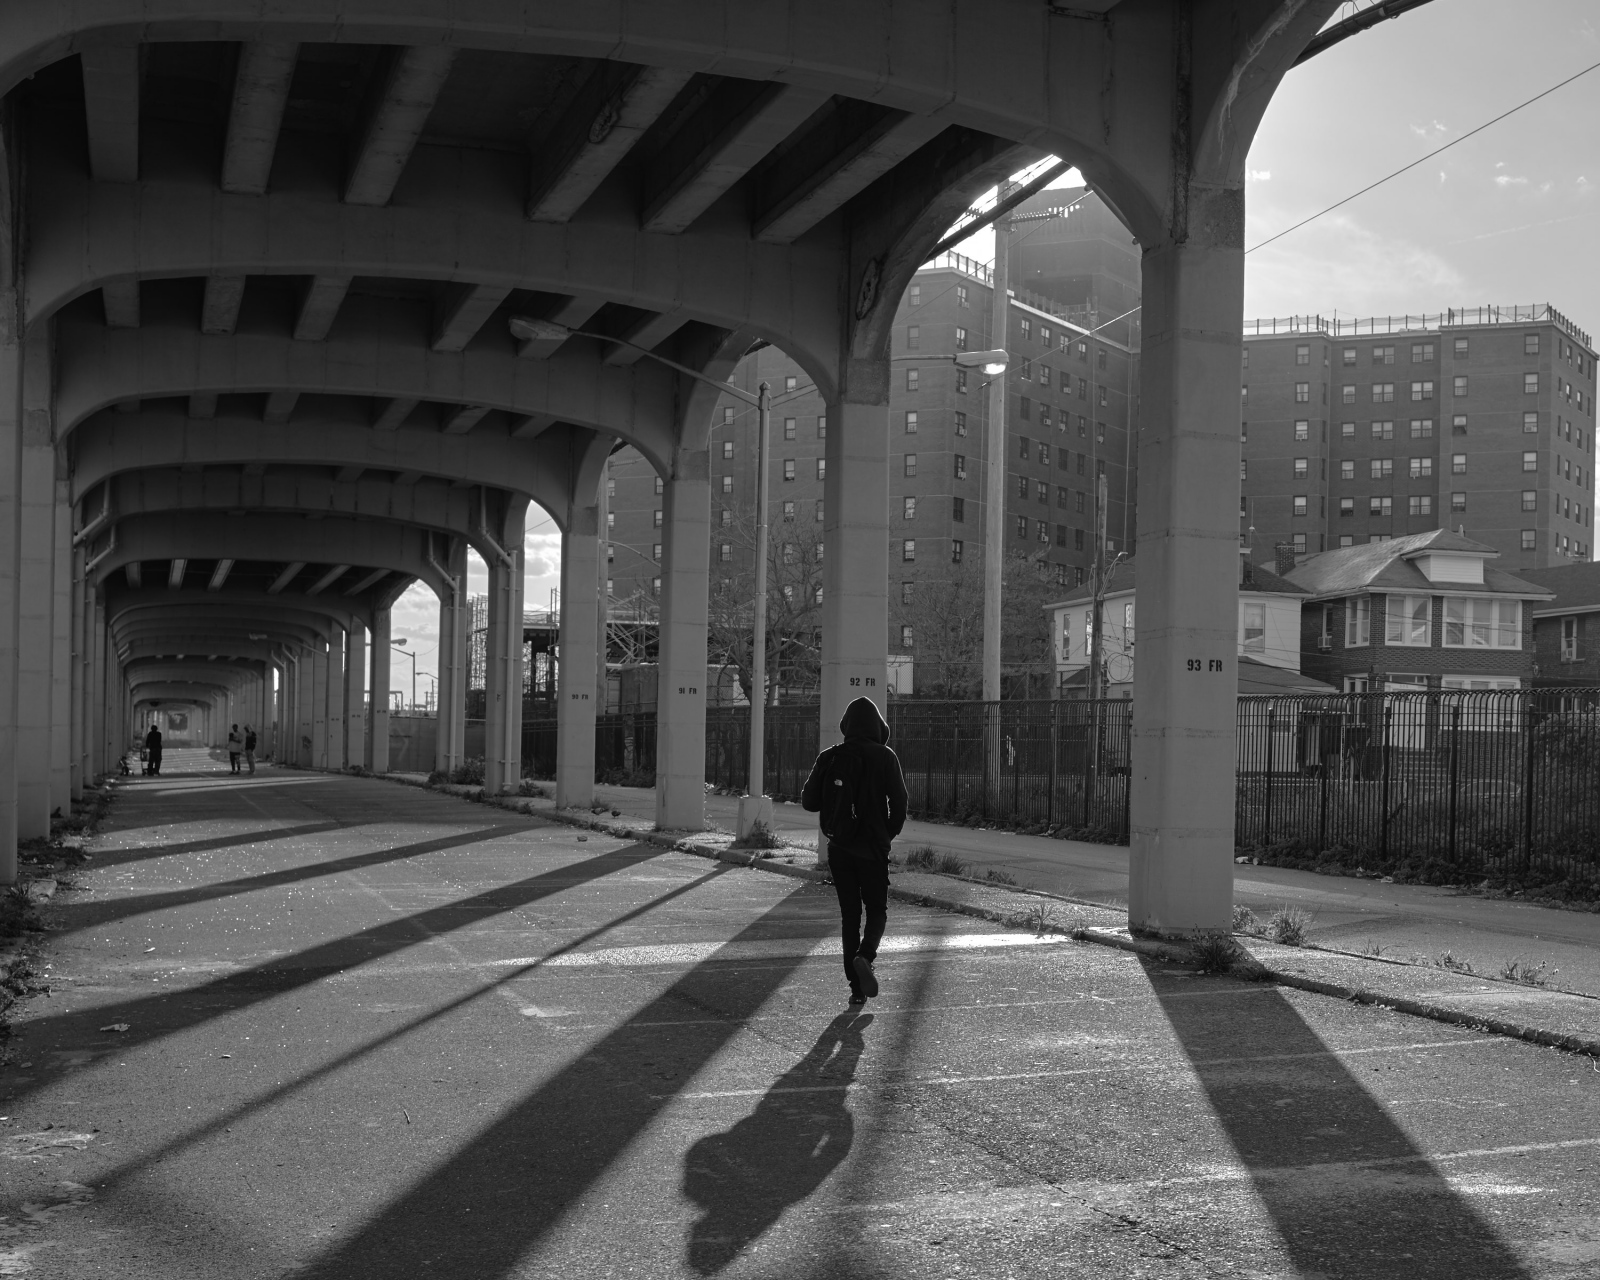 A young boy walks over Arverne, a street that remains closed underneath the train railway system.